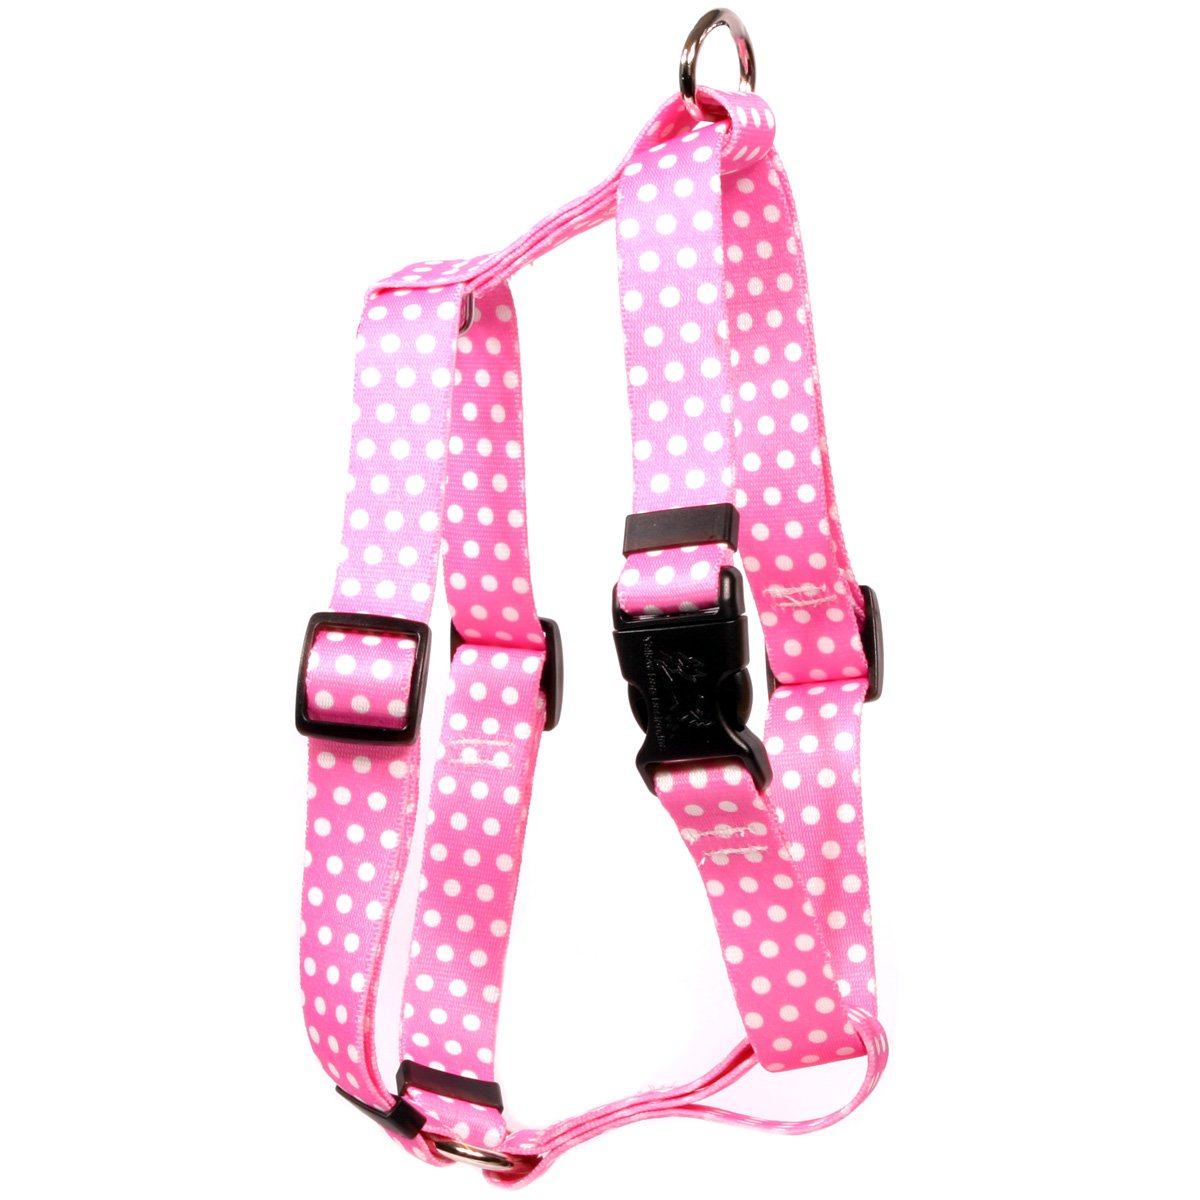 Large 20\ Yellow Dog Design New Pink Polka Dot Roman Style H  Dog Harness, Large-1  Wide and fits Chest of 20 to 28